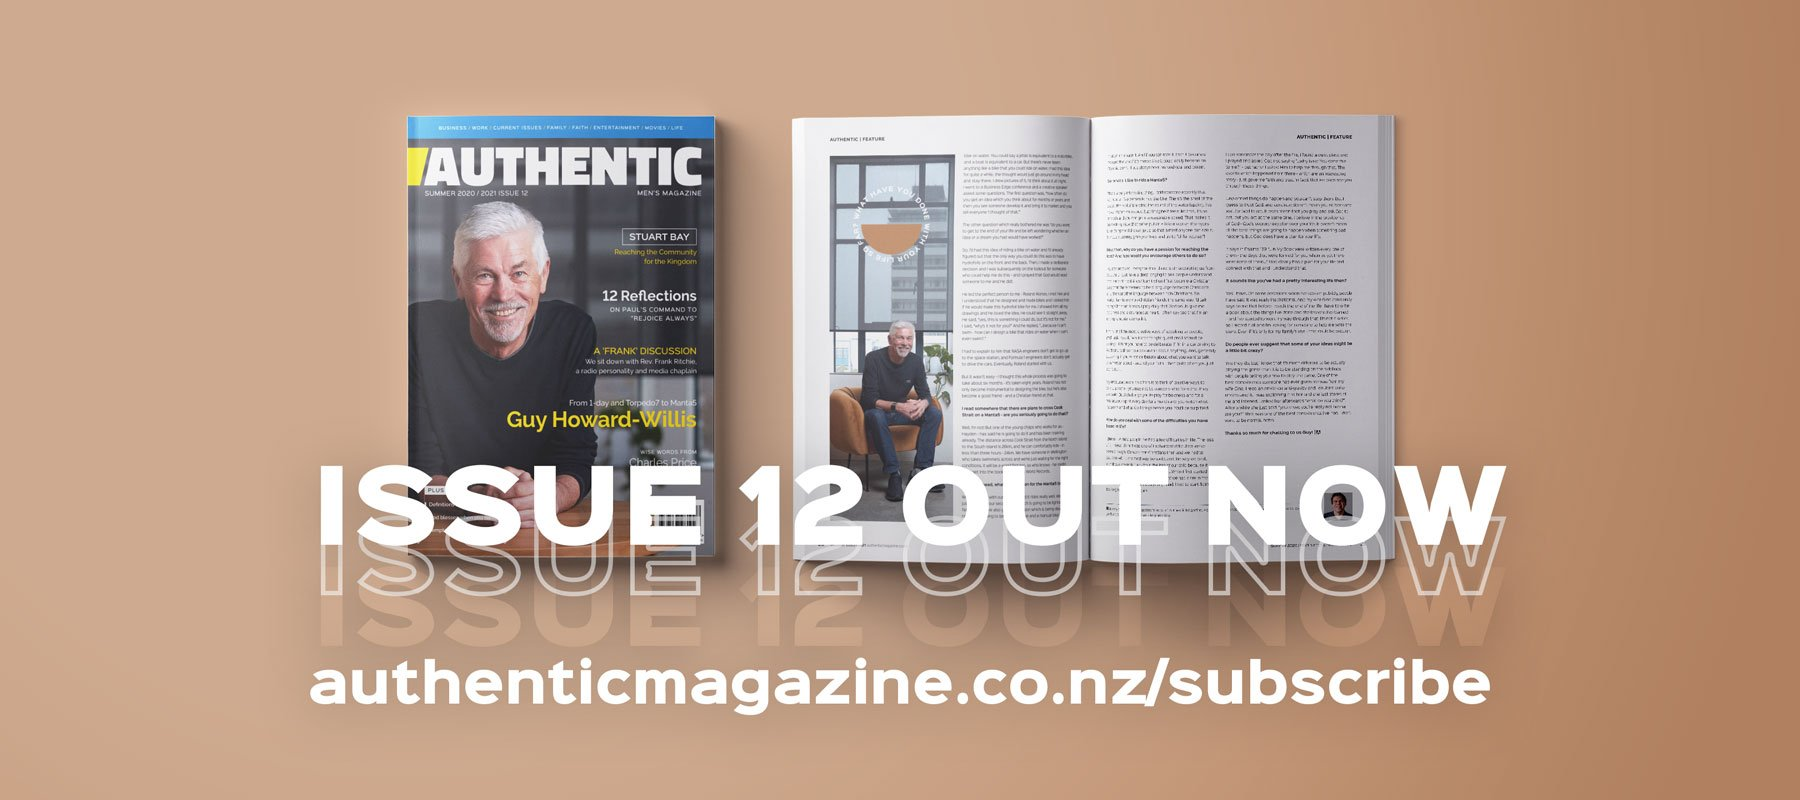 FB-Cover-Template-issue12-2